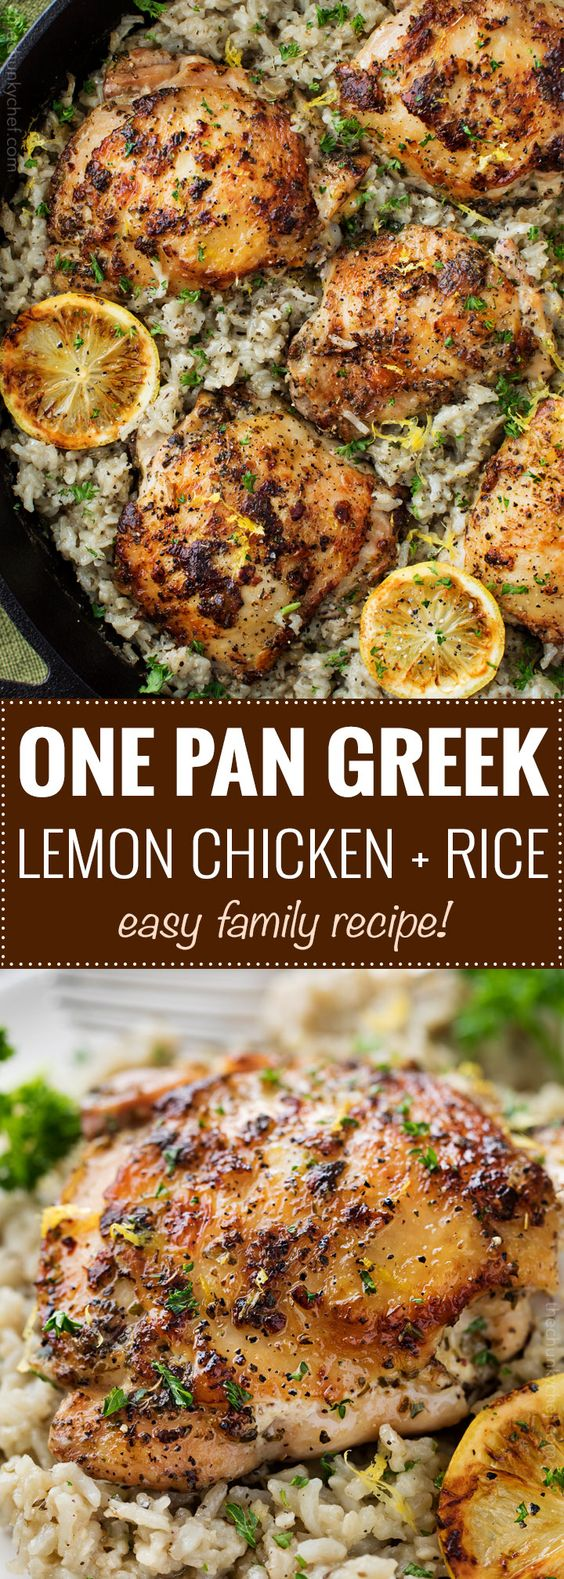 ONE PAN GREEK LEMON CHICKEN AND RICE